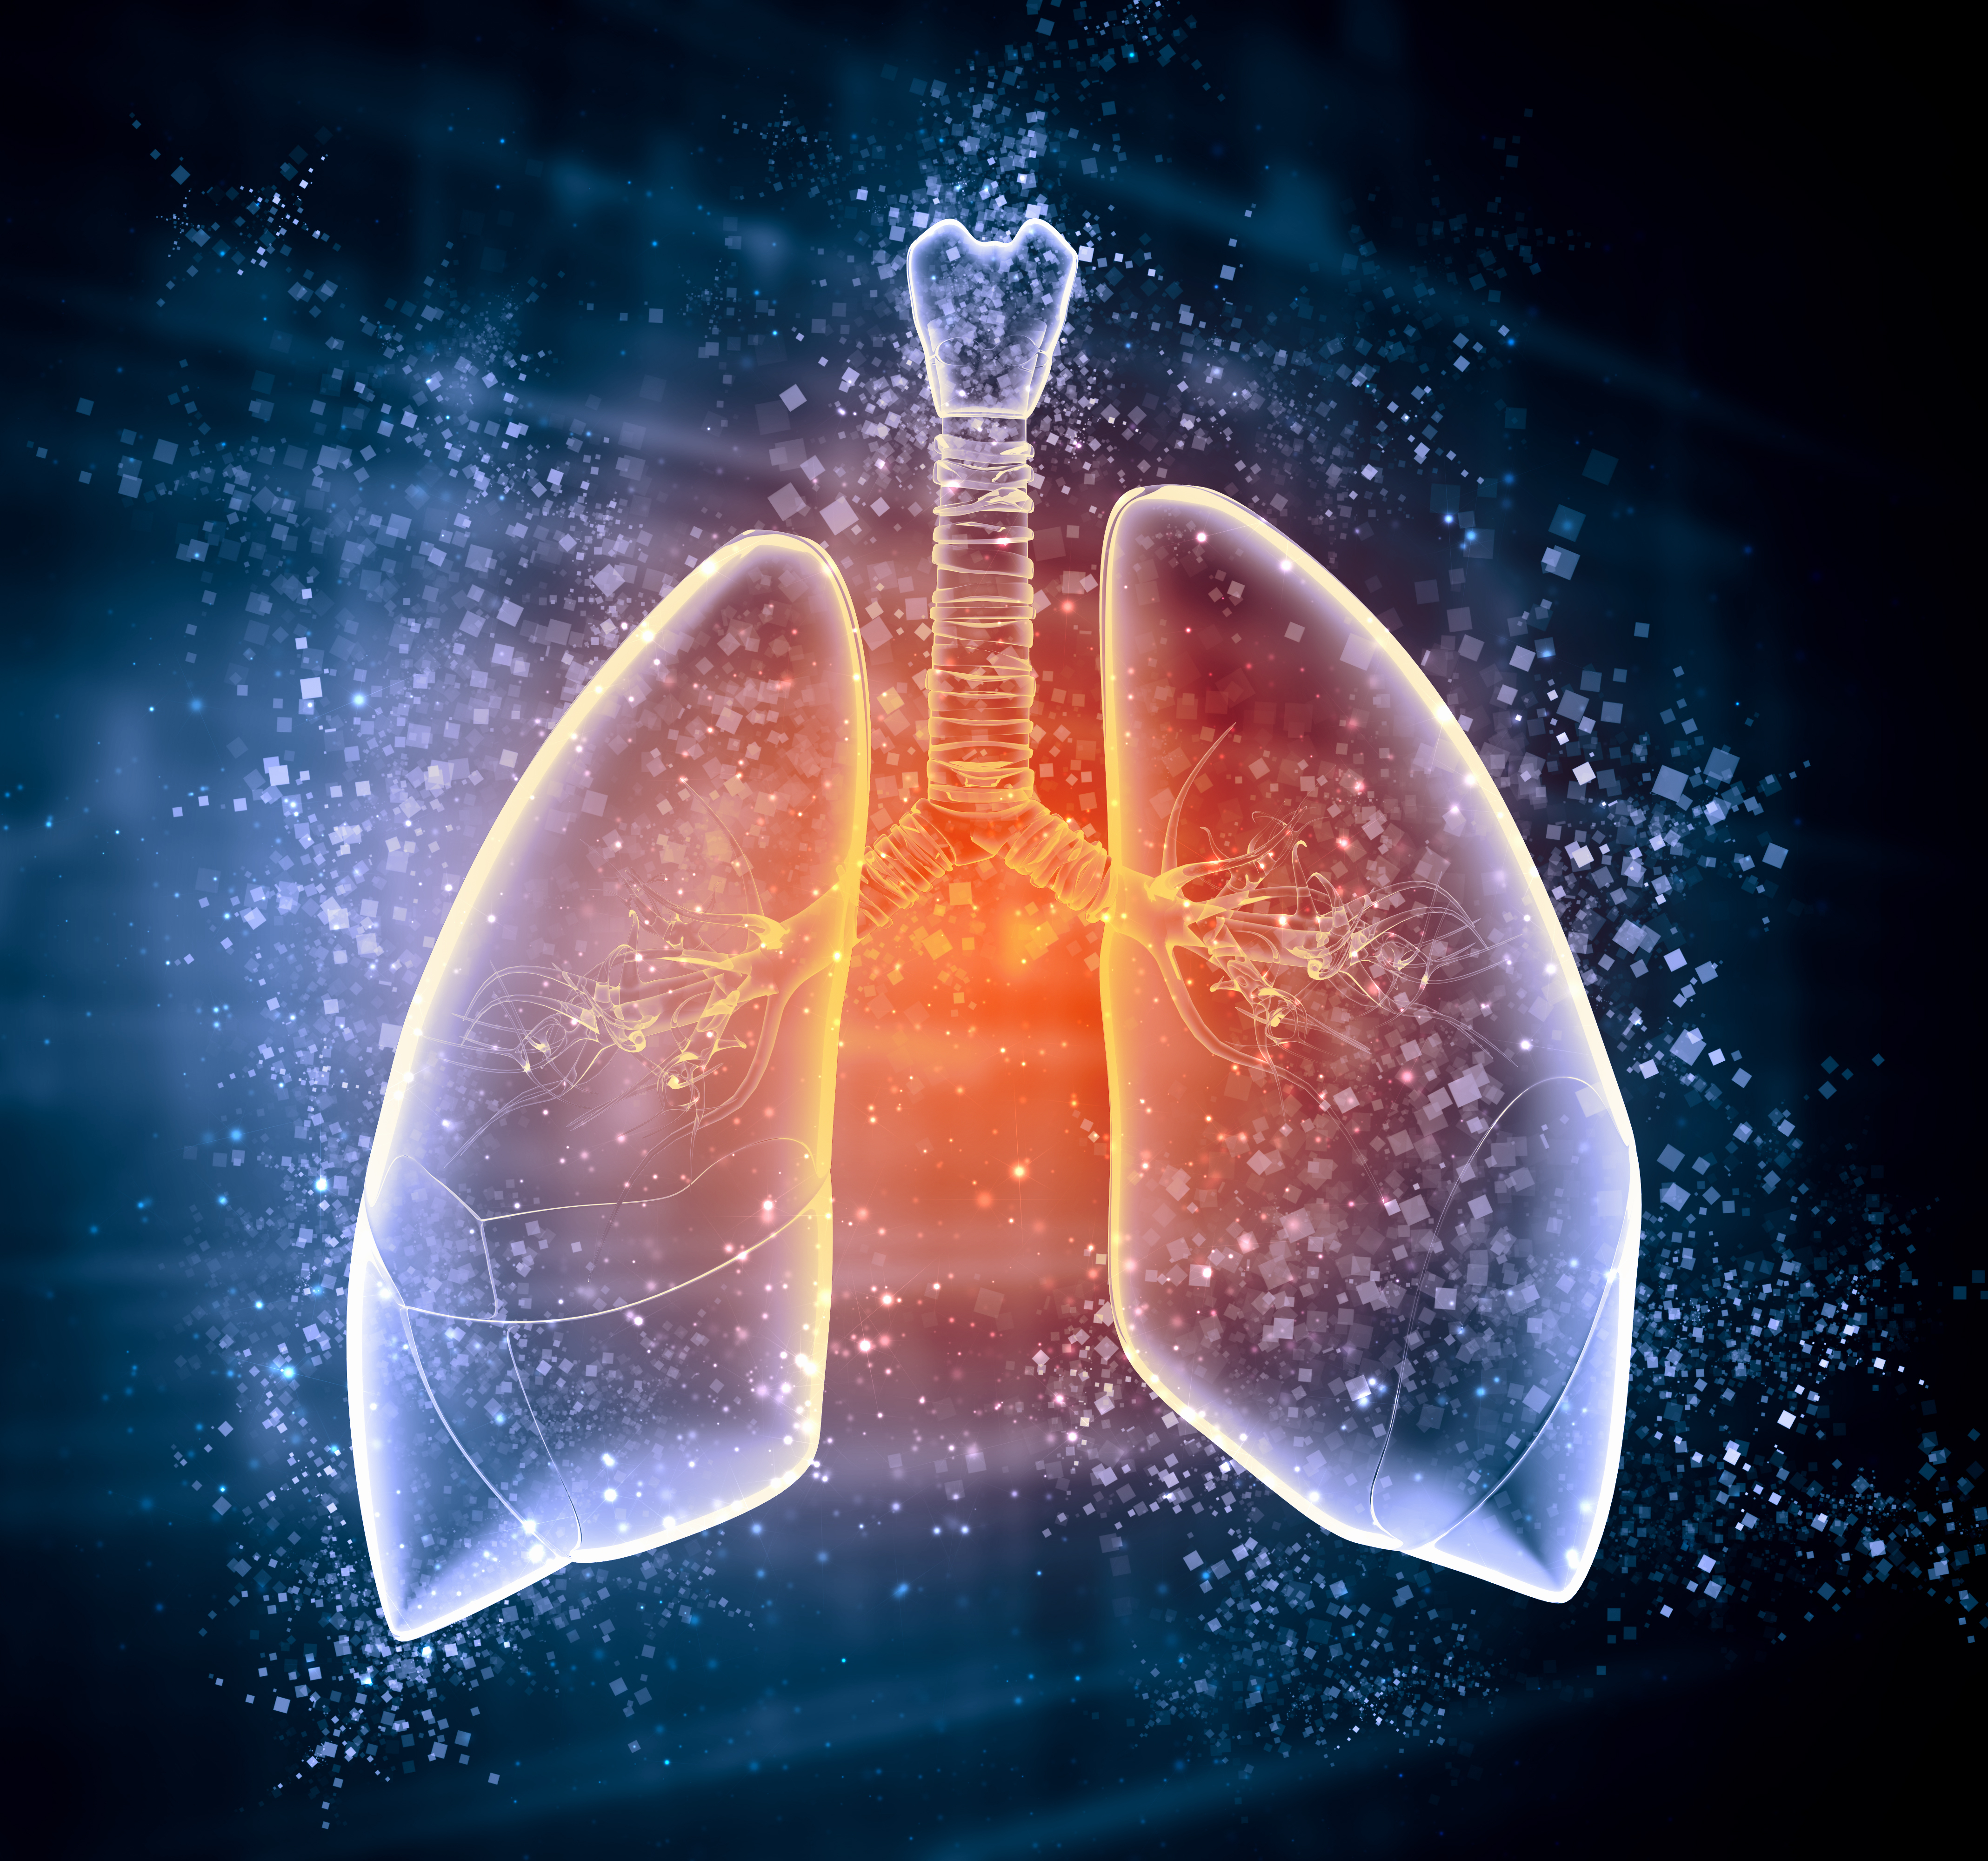 Researchers Measure Lung Function Using Sound Waves